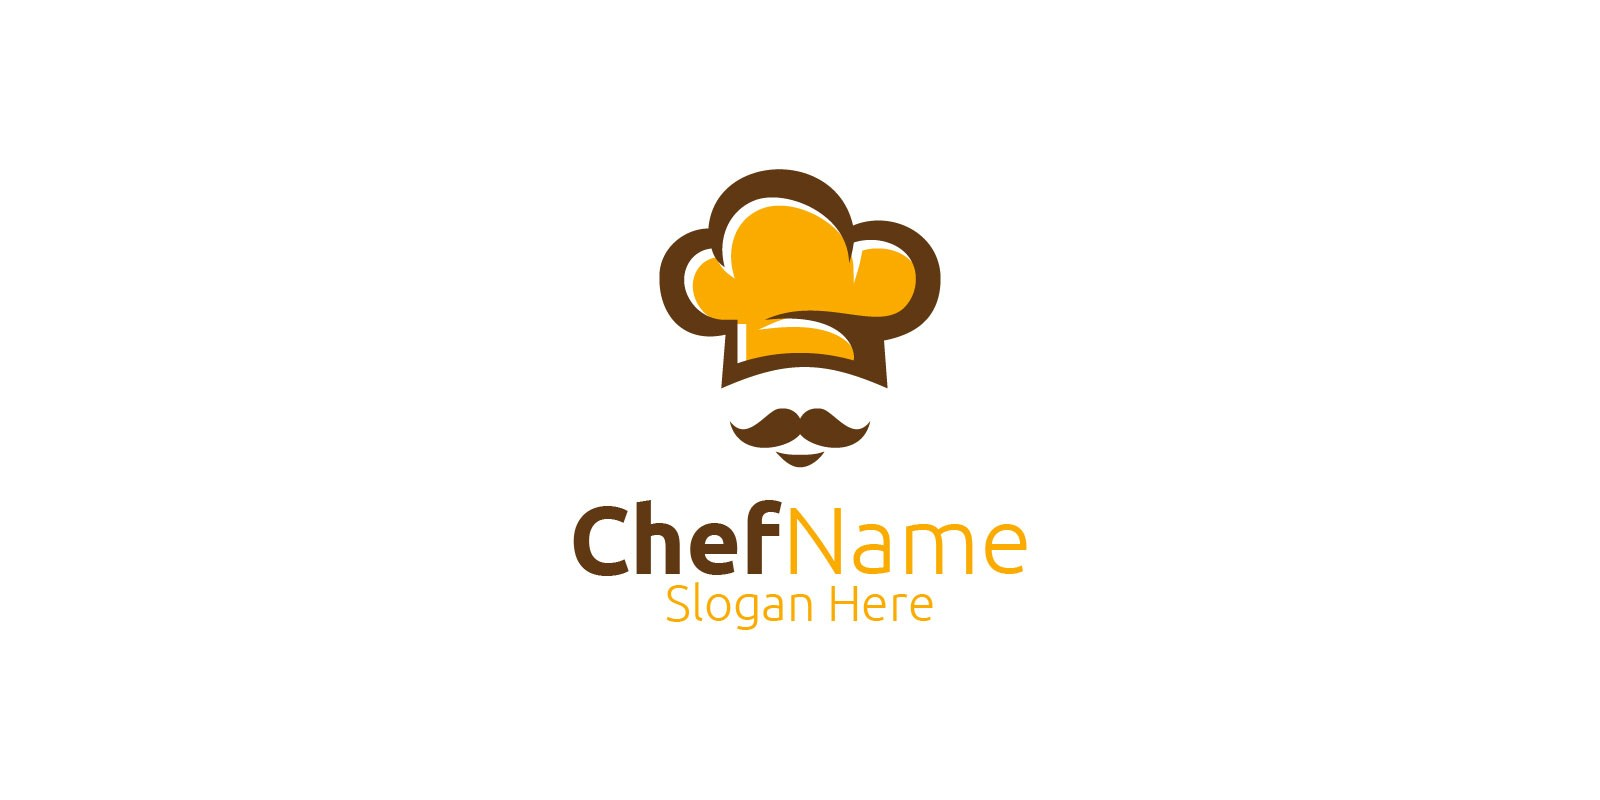 Chef Food Logo For Restaurant Or Cafe